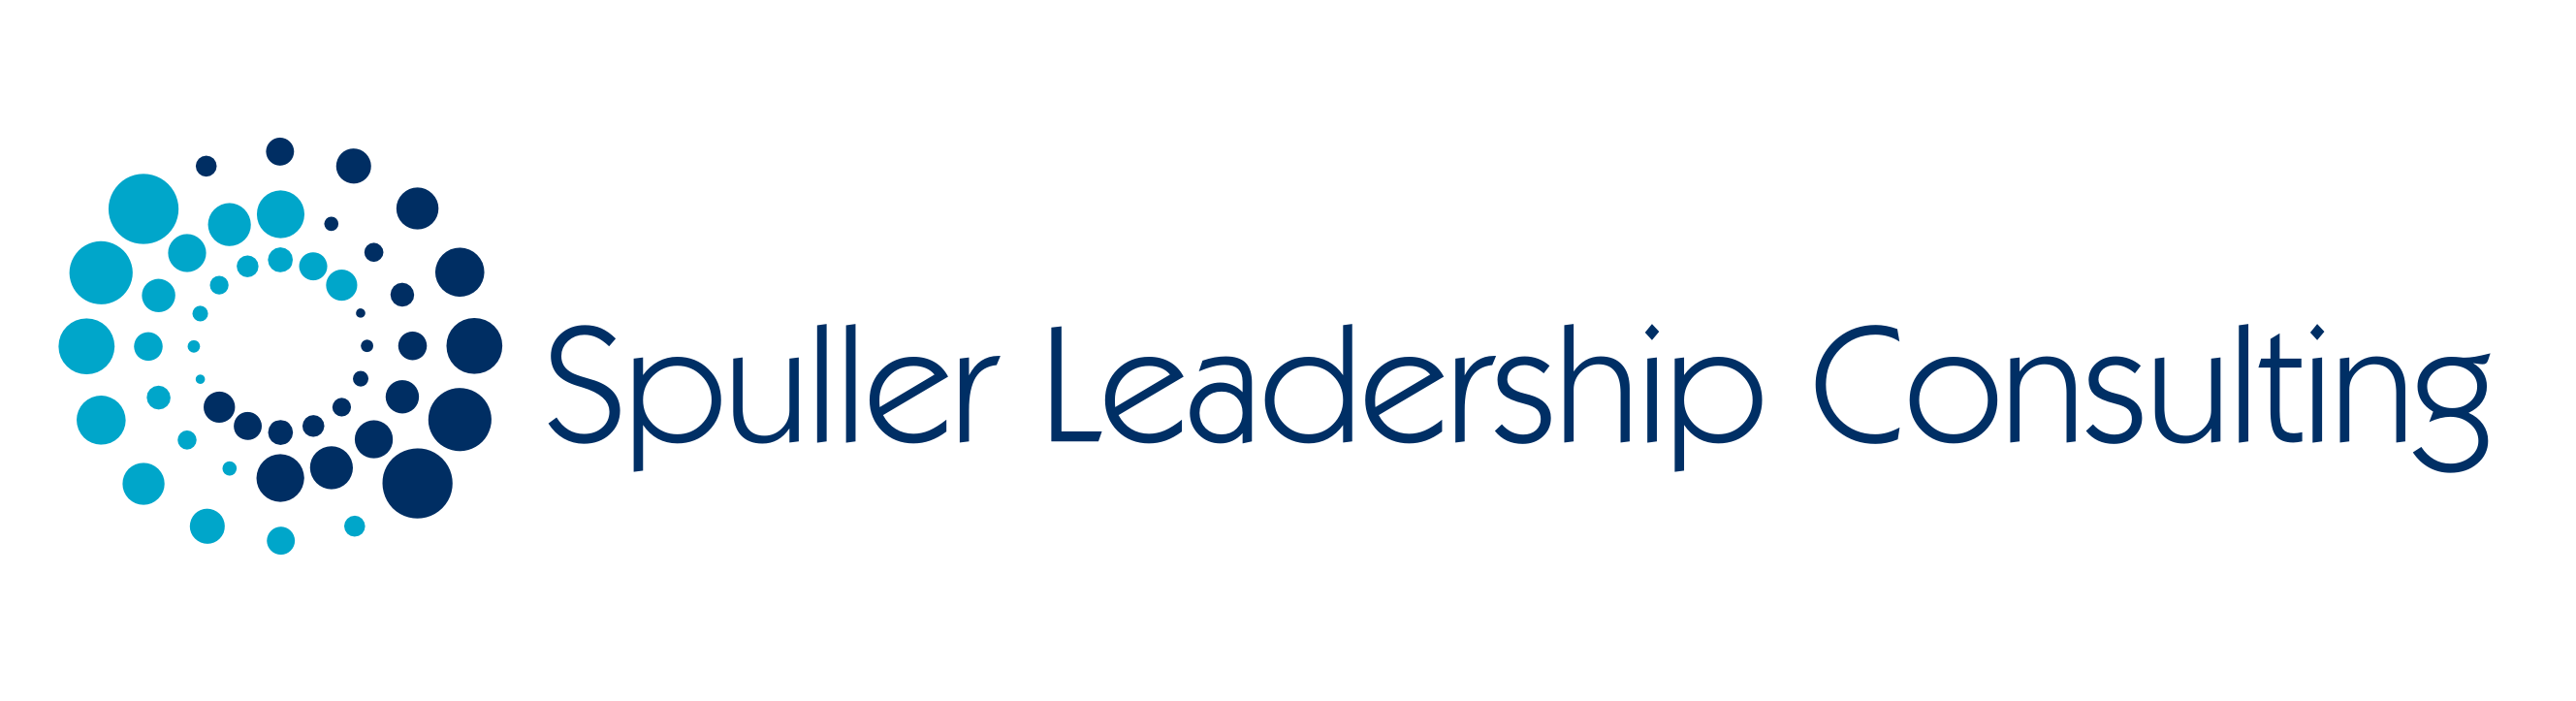 Spuller Leadership Consulting, LLC